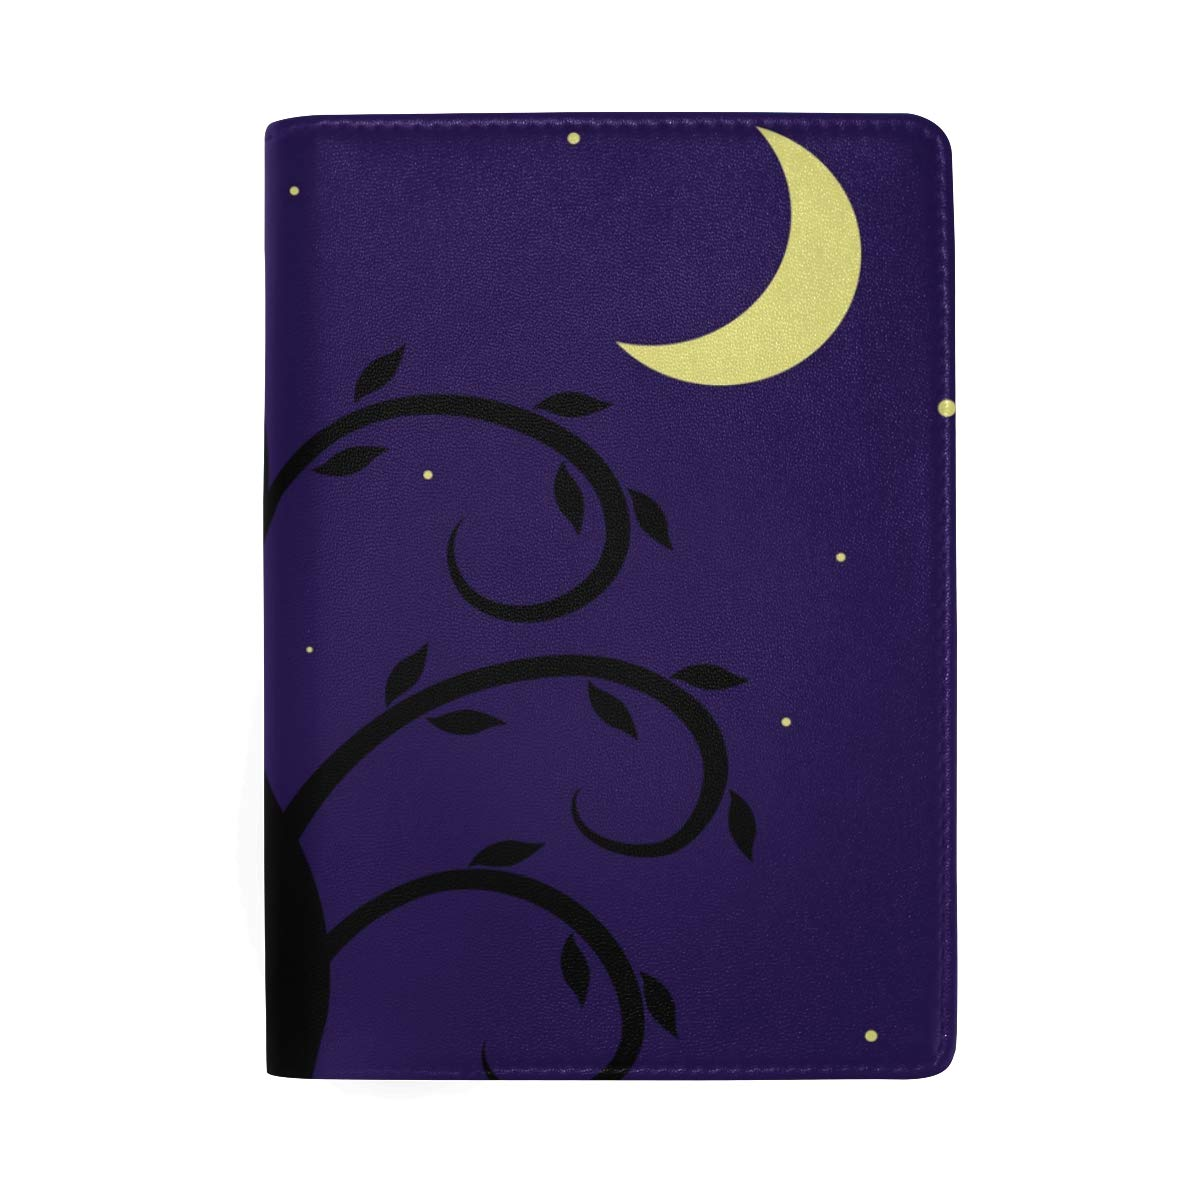 Starry Night Landscape Owl On Tree Abstract Leather Passport Holder Cover Case Protector for Men Women Travel with Slots